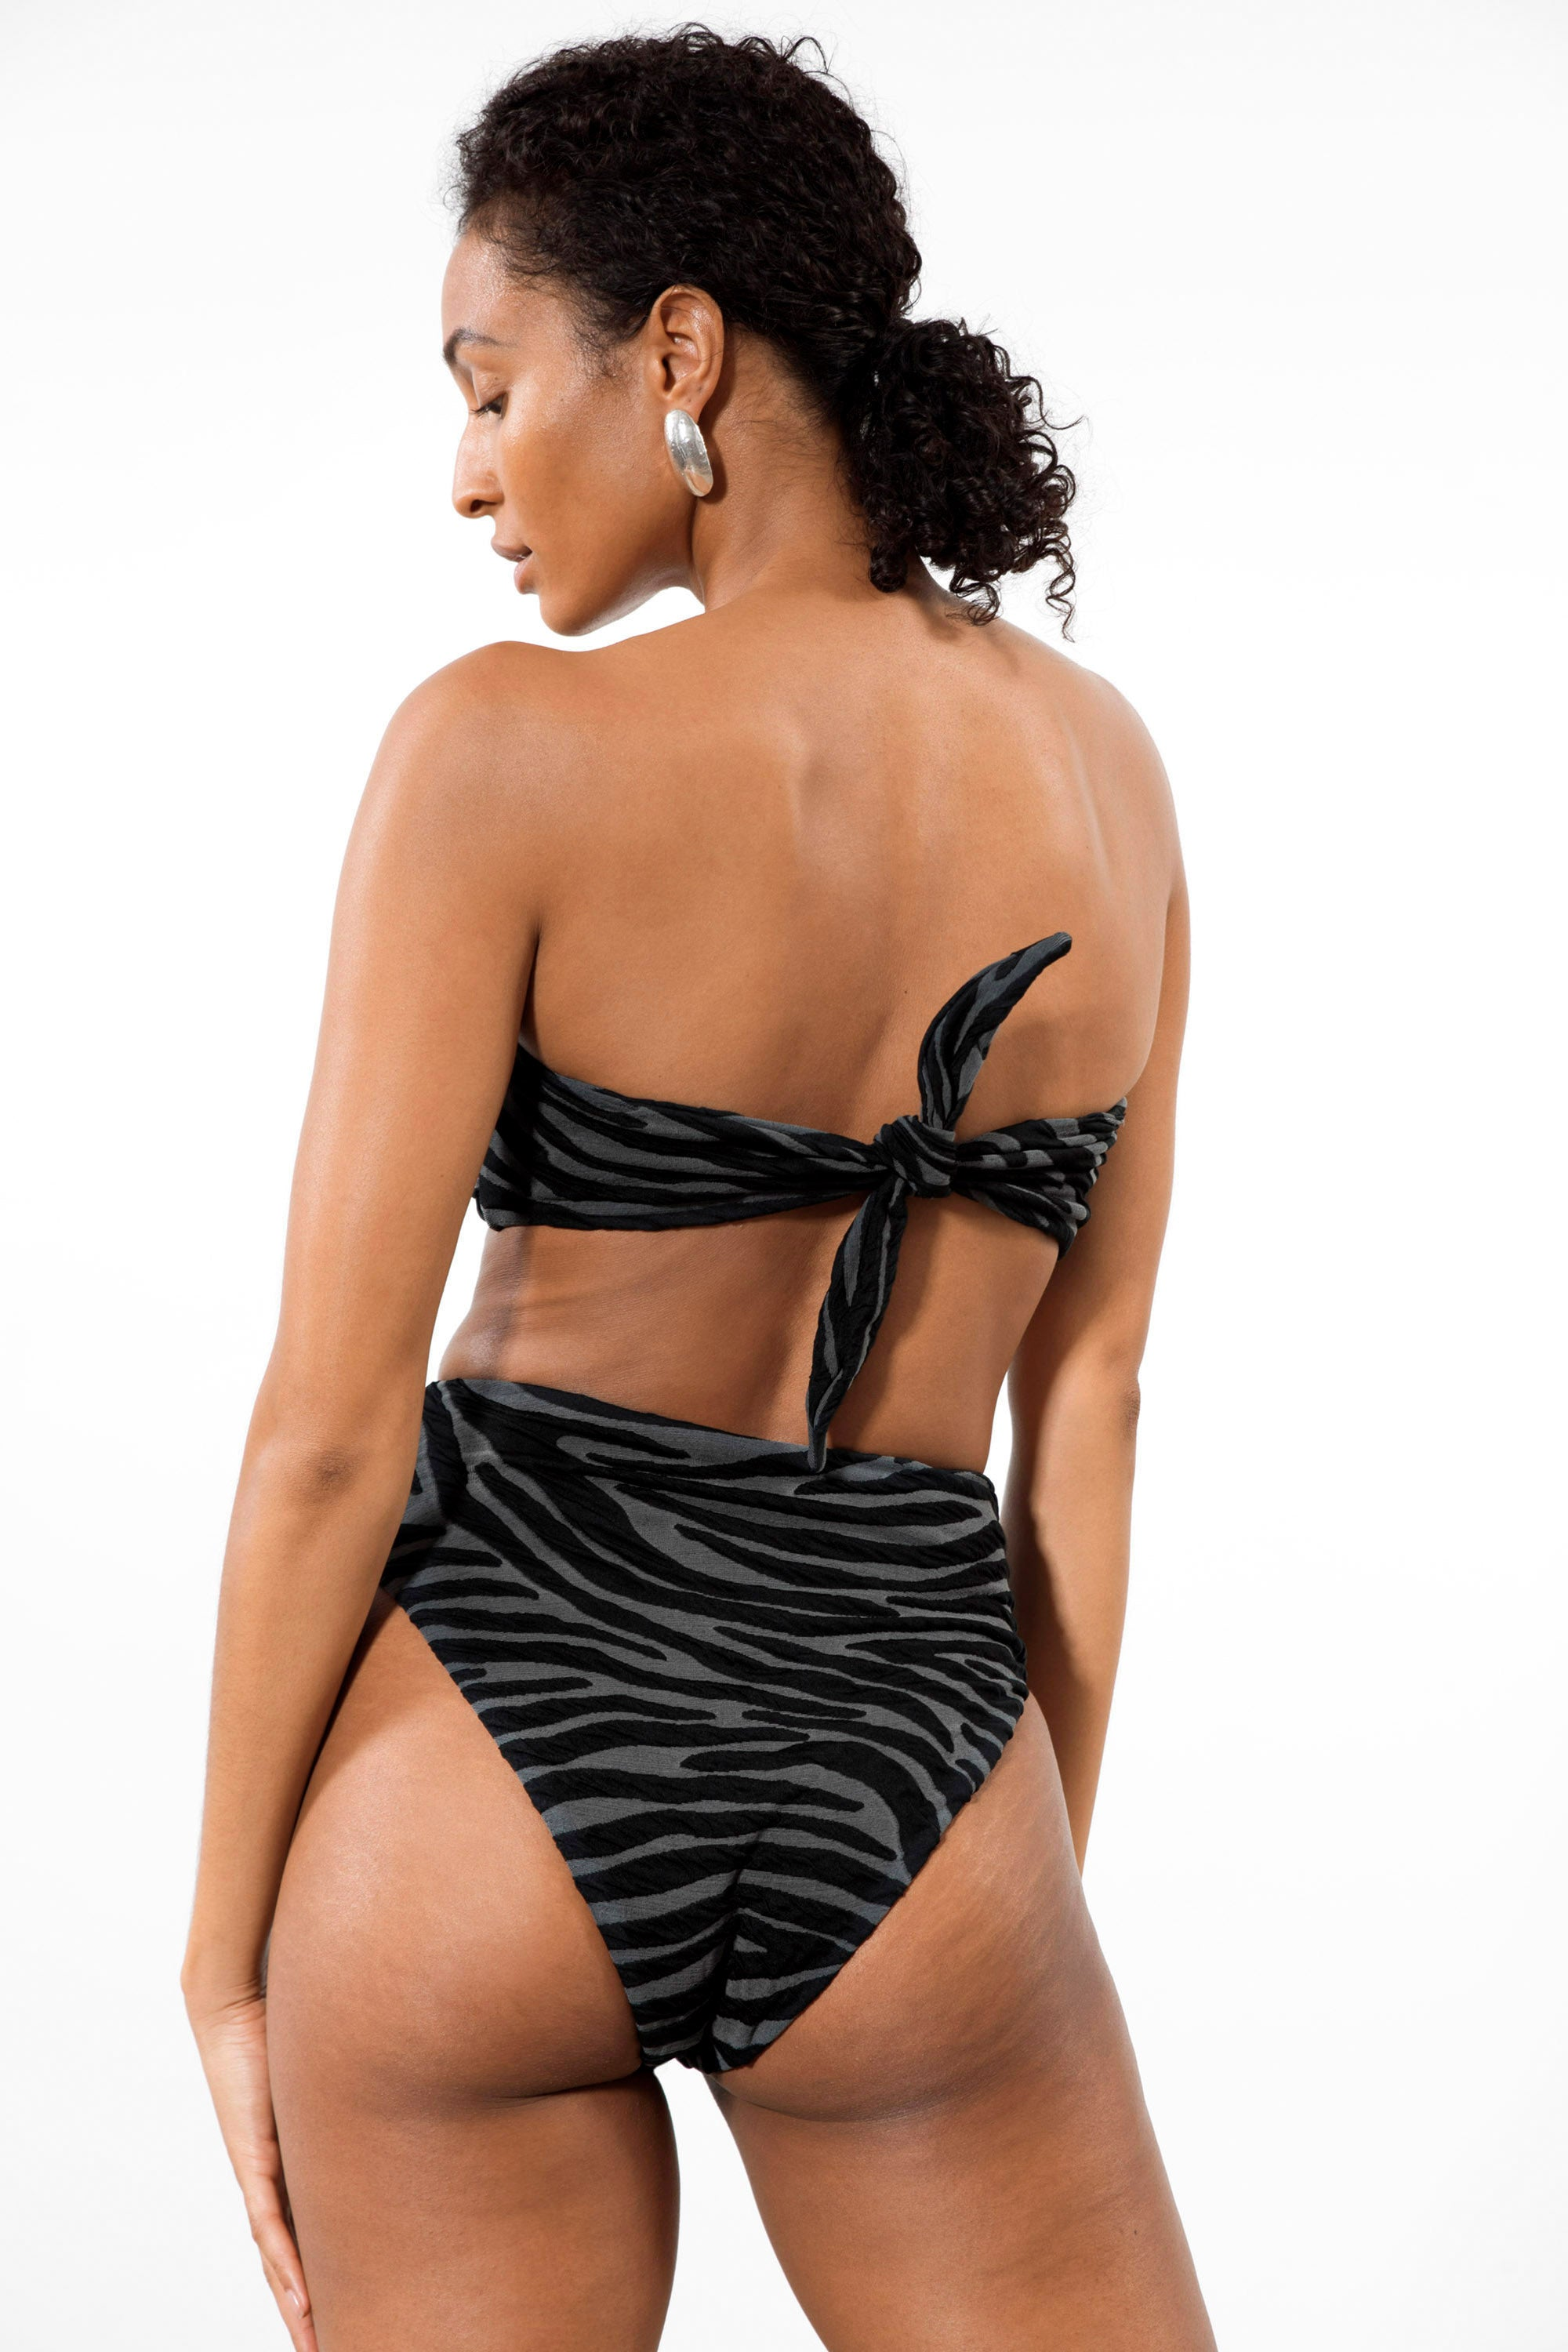 Mara Hoffman Black Gray Imina Bikini Bottom in Repreve (back detail)